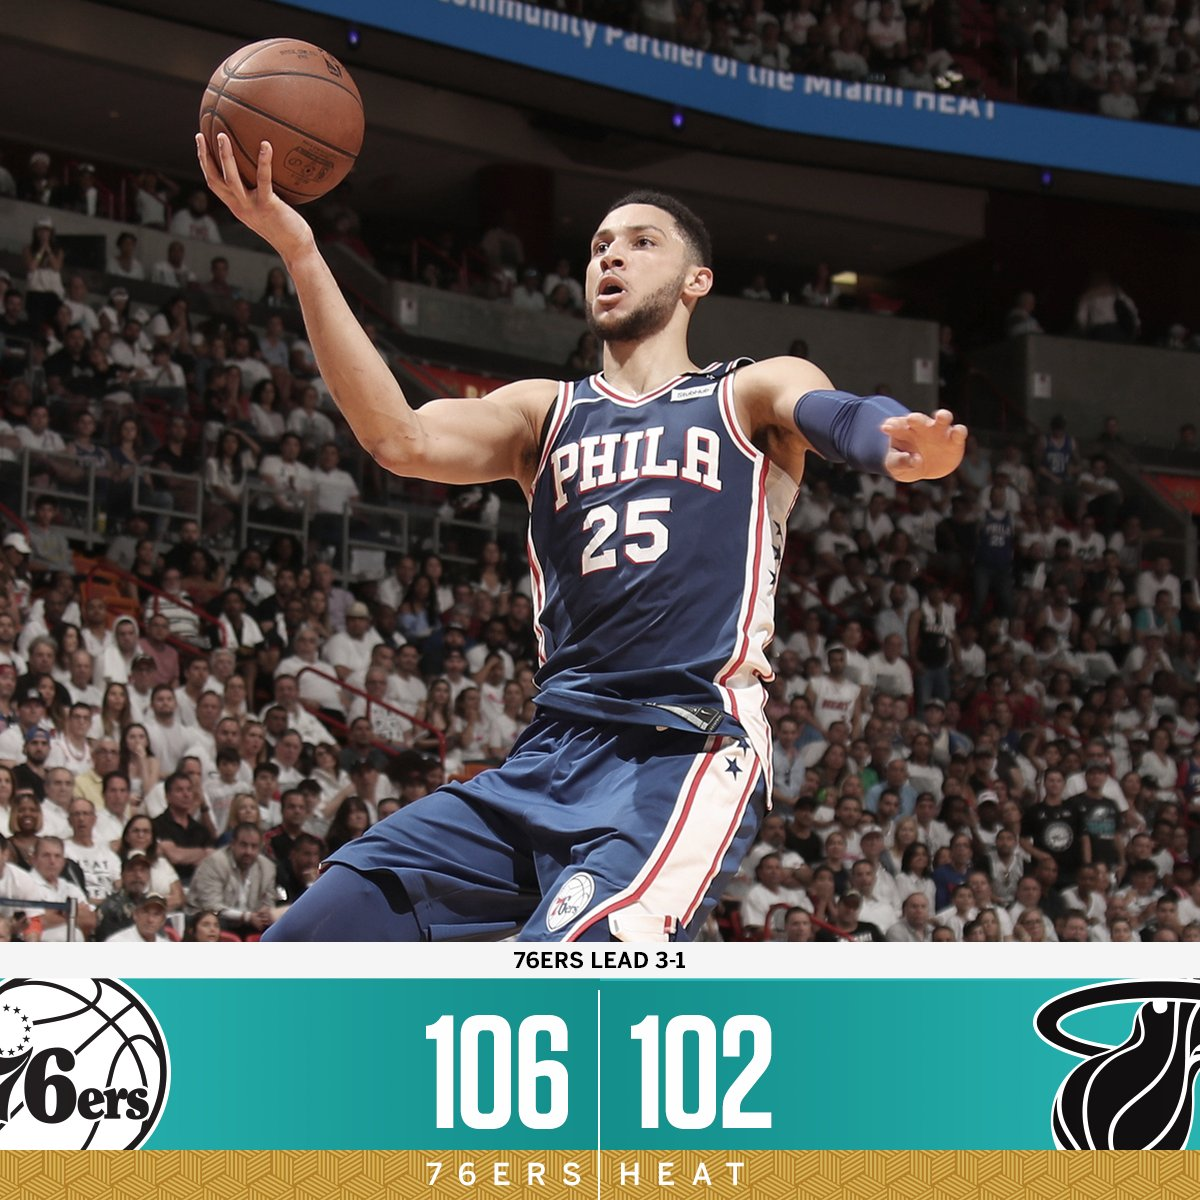 Philly gets it done in Miami, and takes a 3-1 lead! https://t.co/sRfMiRugEz